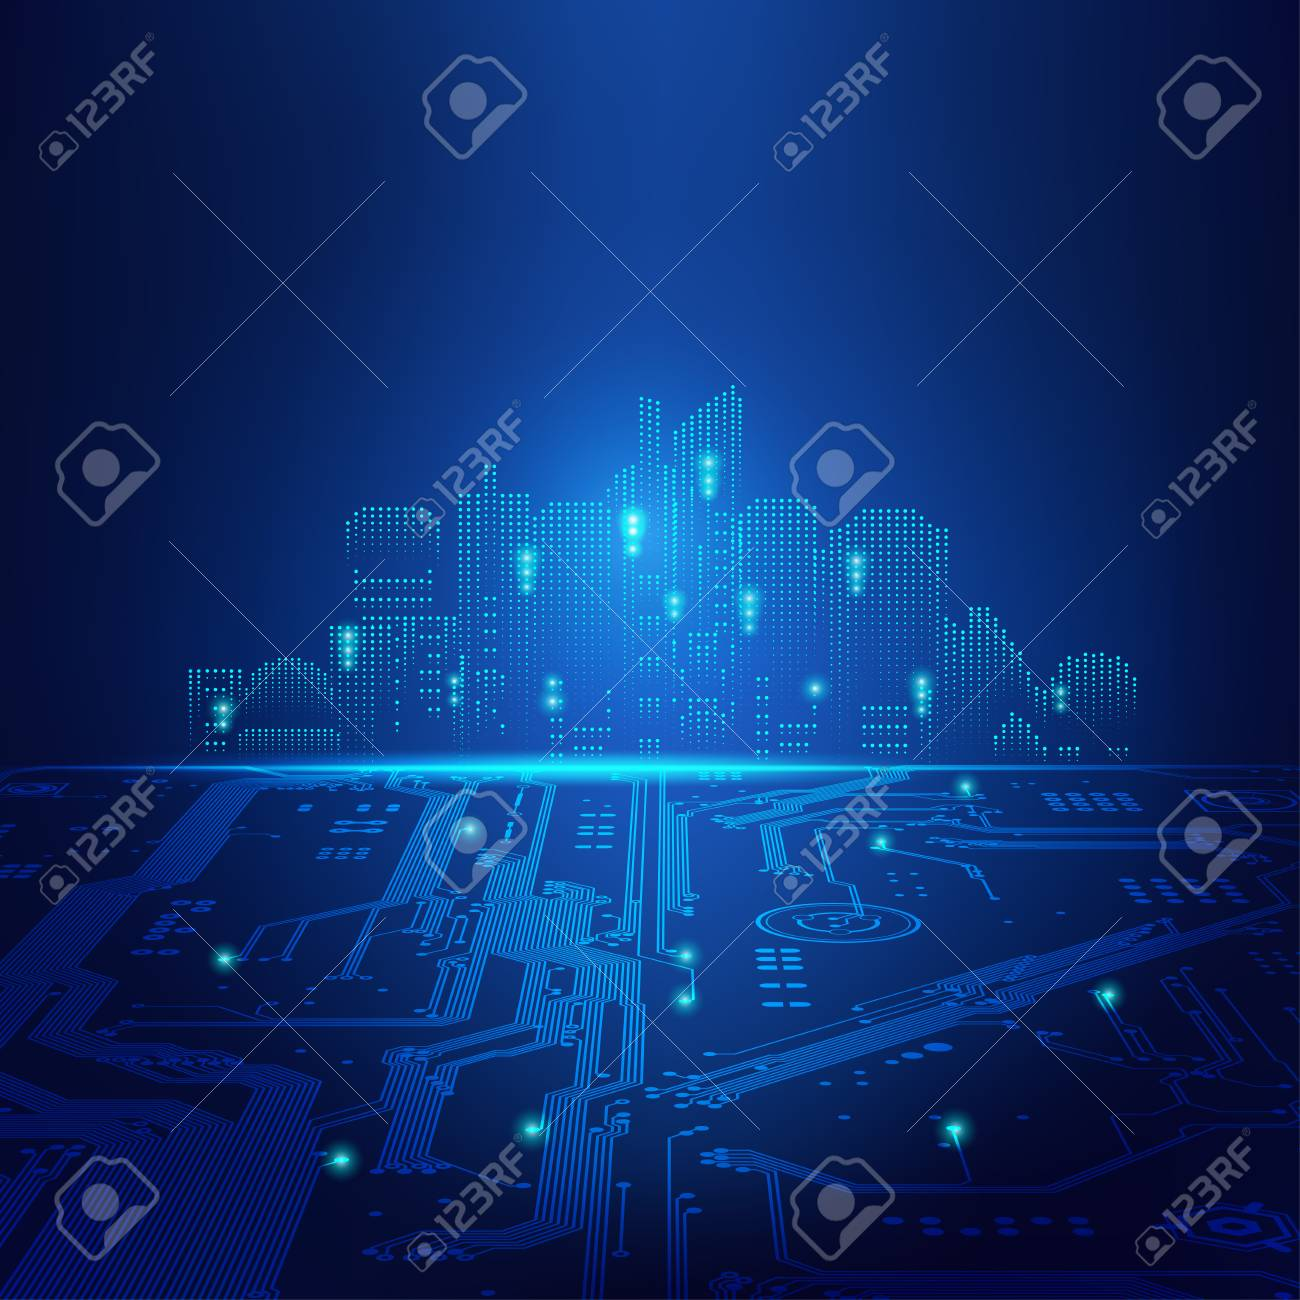 abstract futuristic background; digital building in a matrix style; technological city combined with electronic board - 88844803